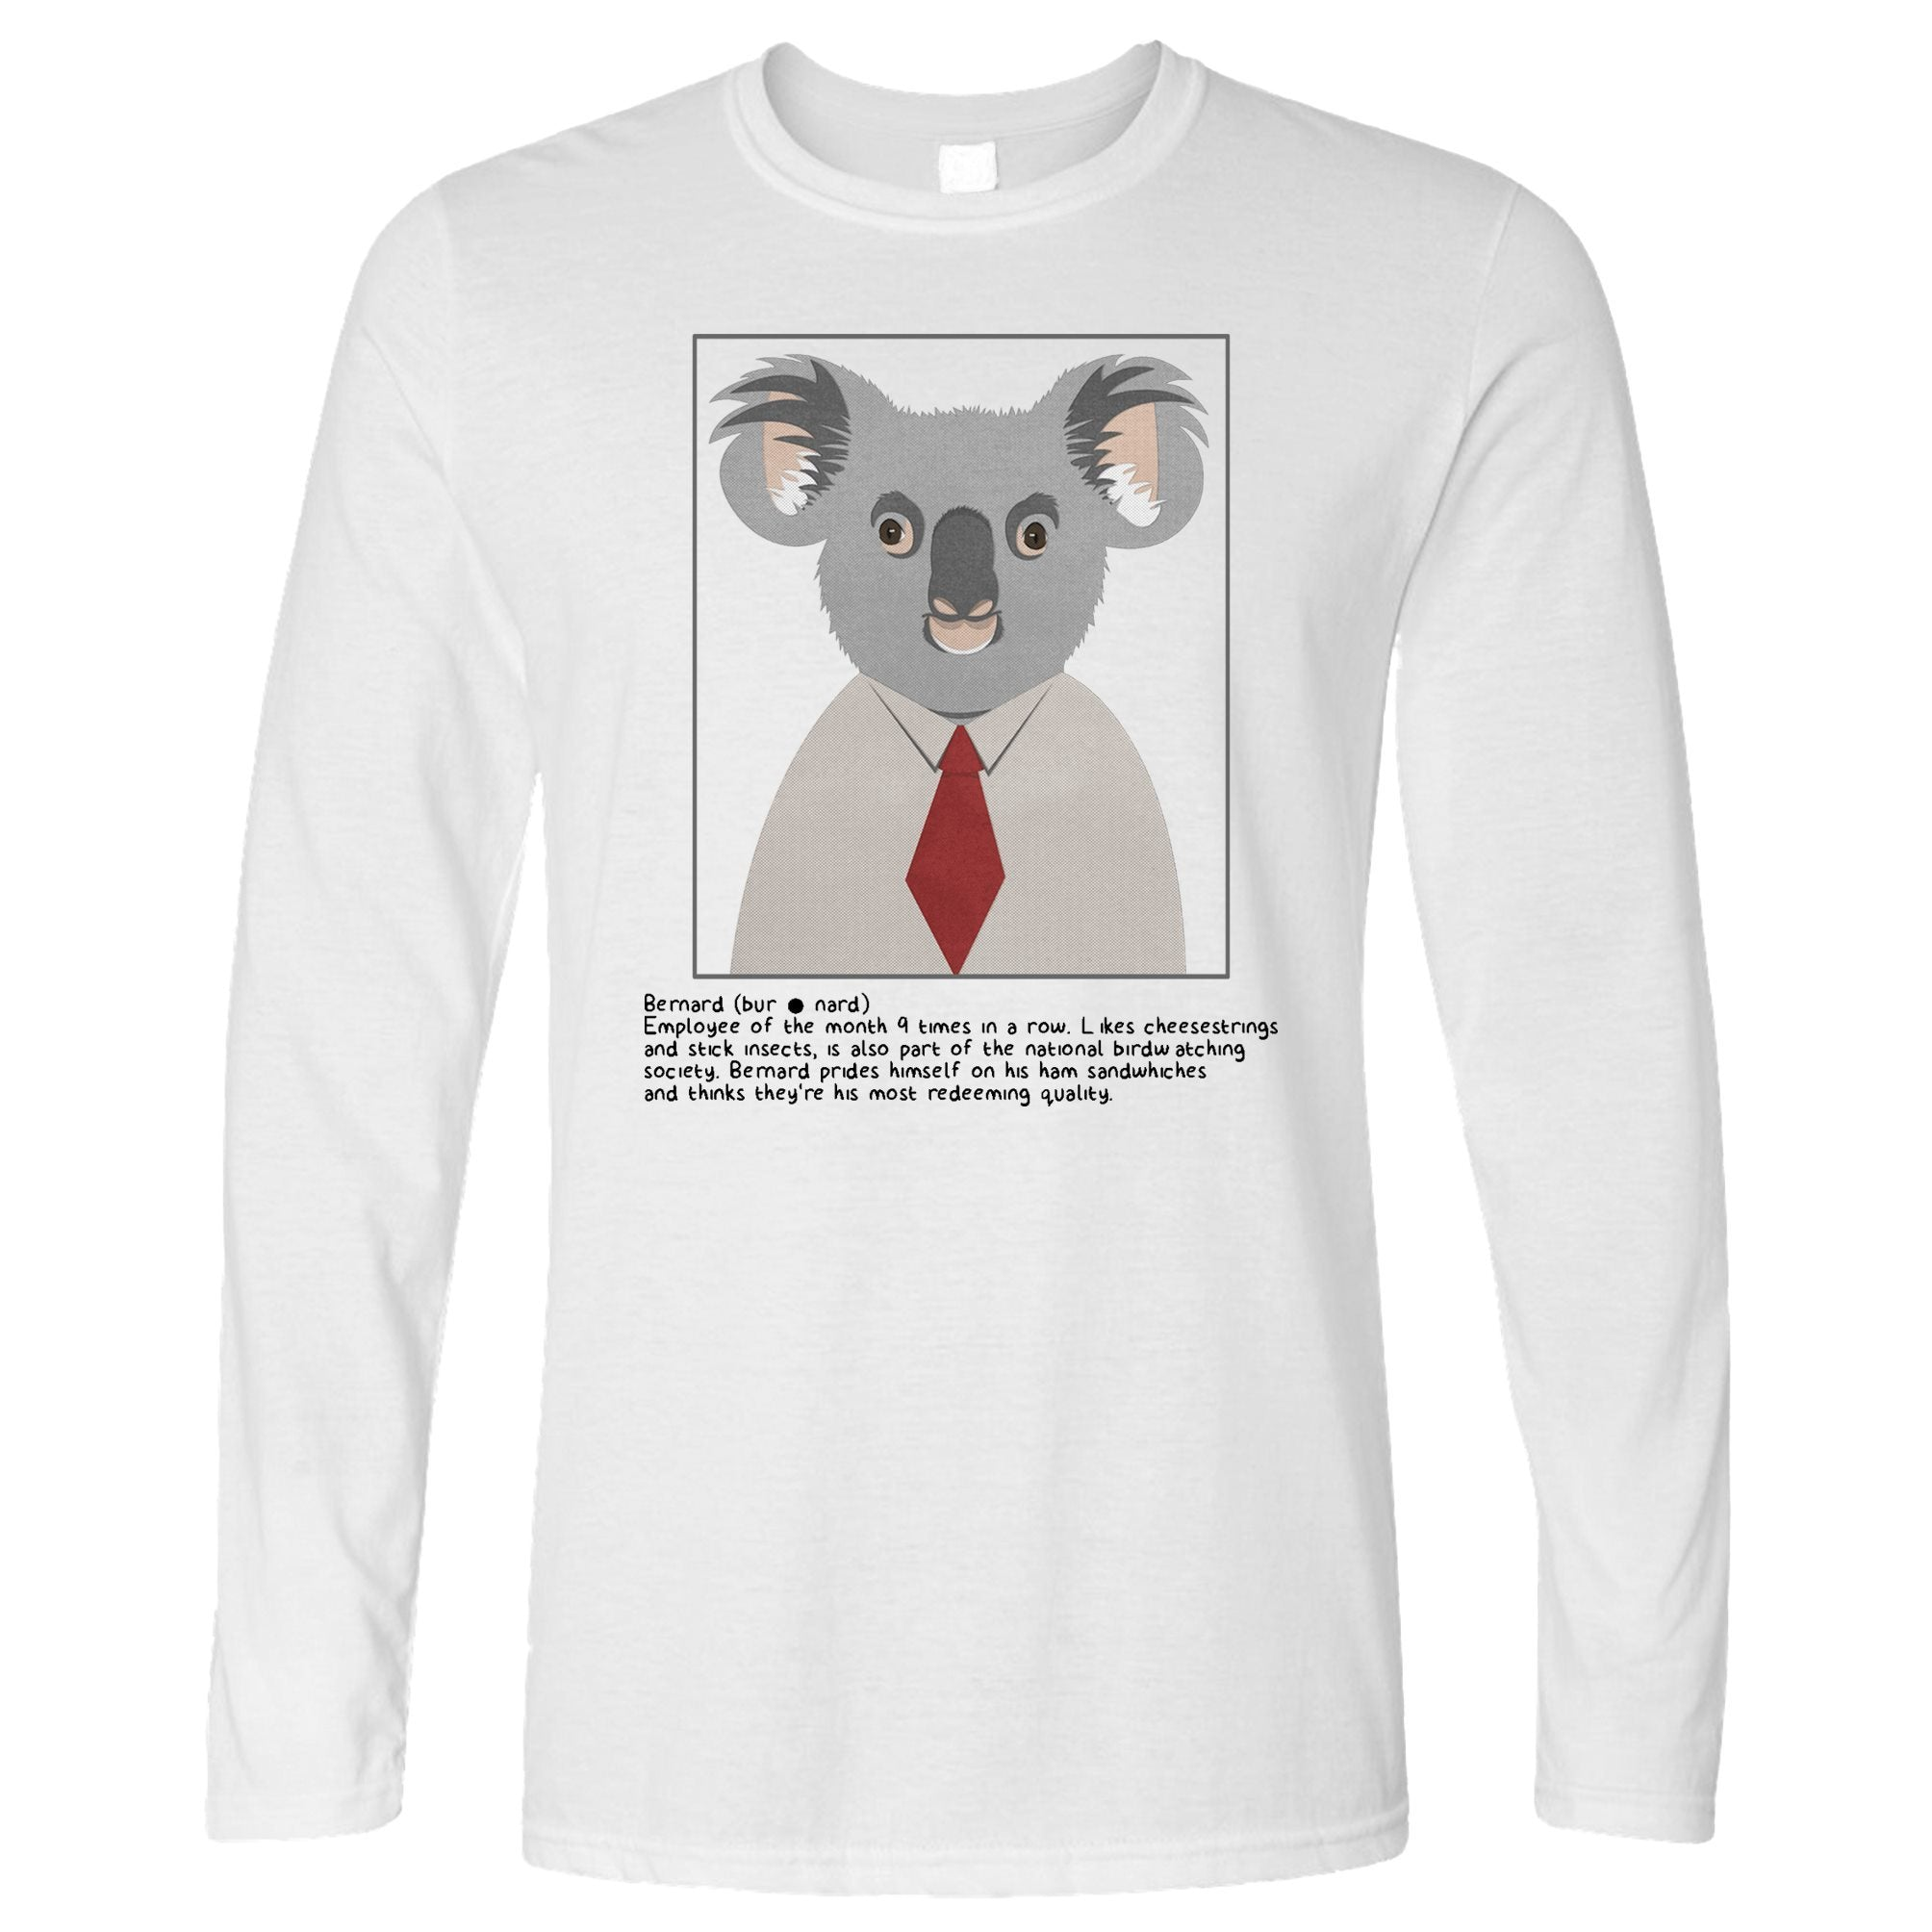 Novelty Animal Long Sleeve Bernard the Koala Caption T-Shirt